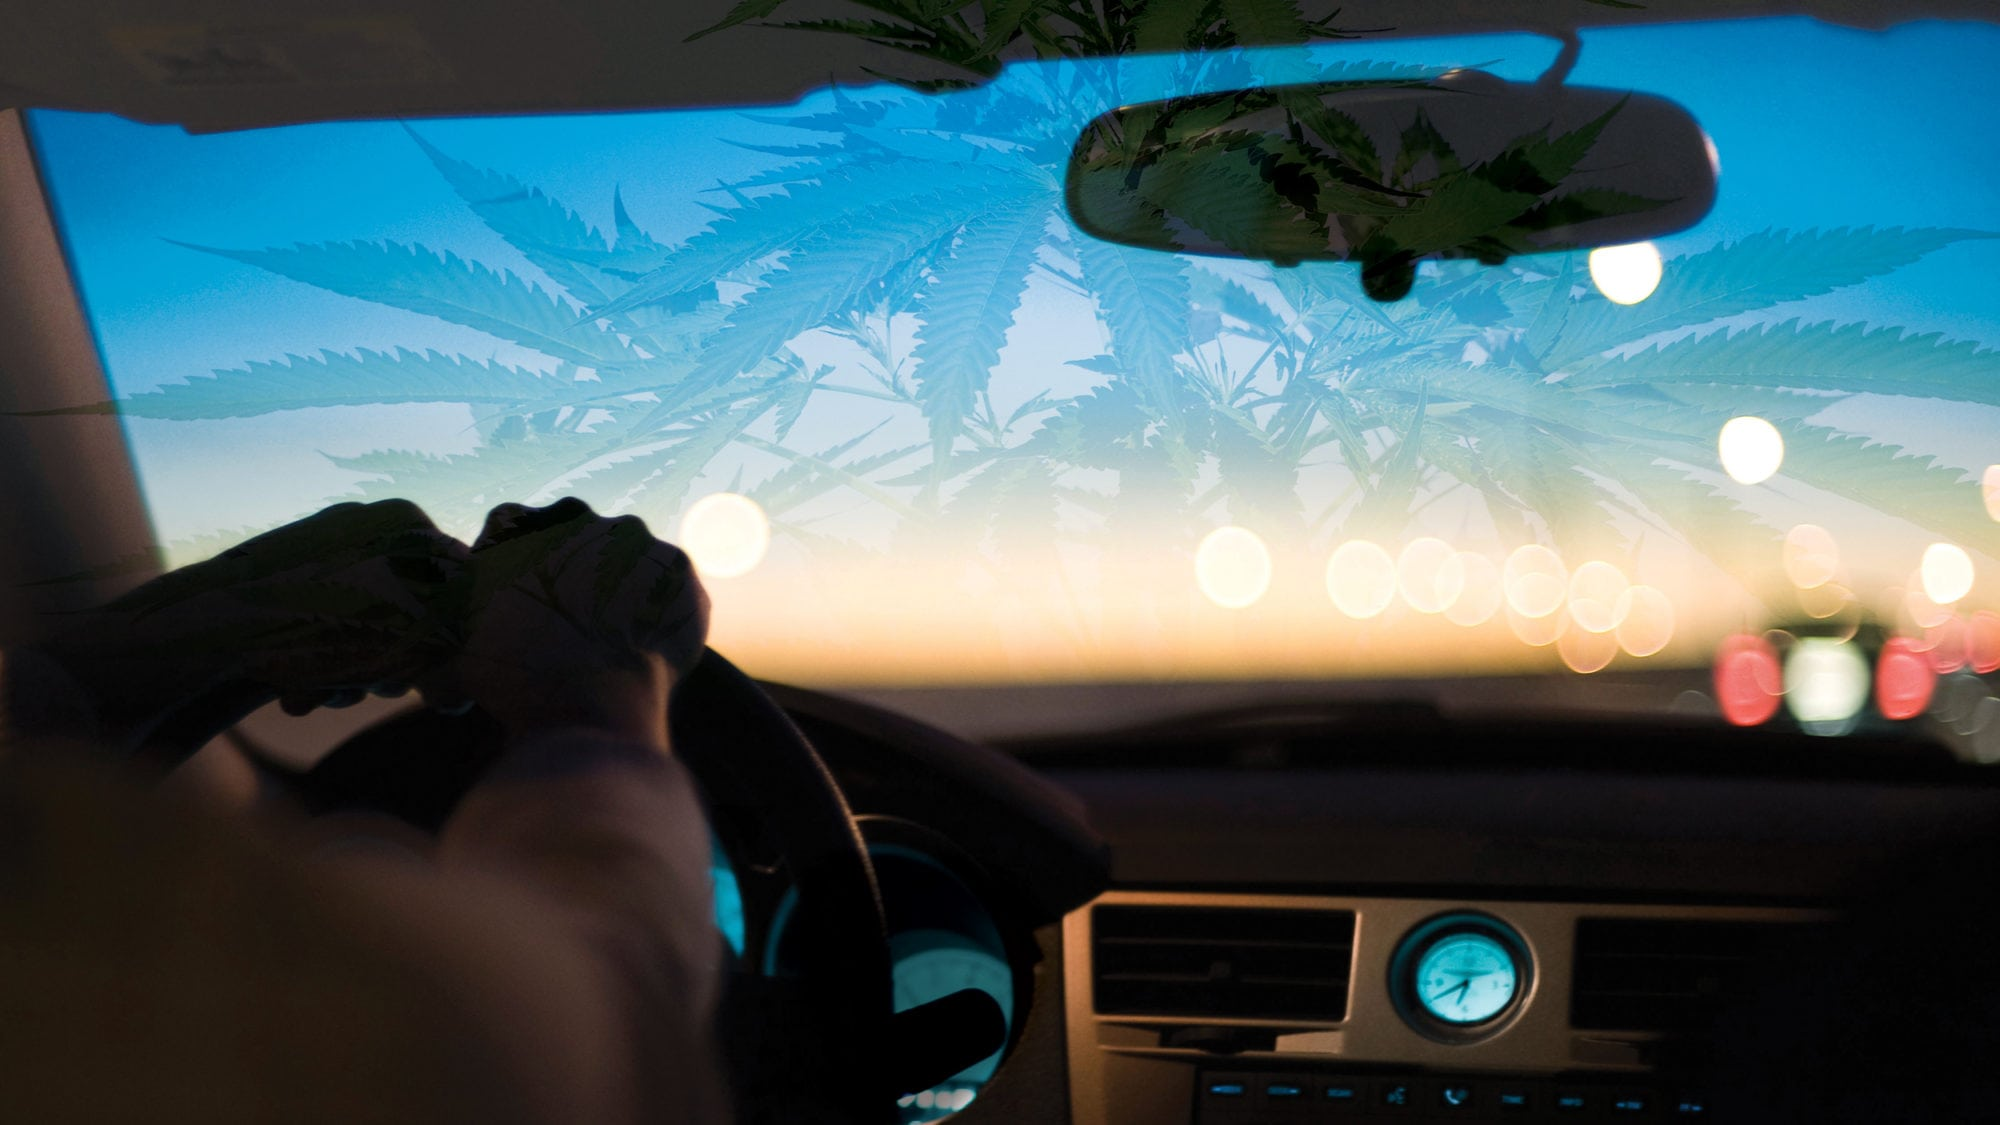 Pot Use Could Double Risk of Car Crash forecasting